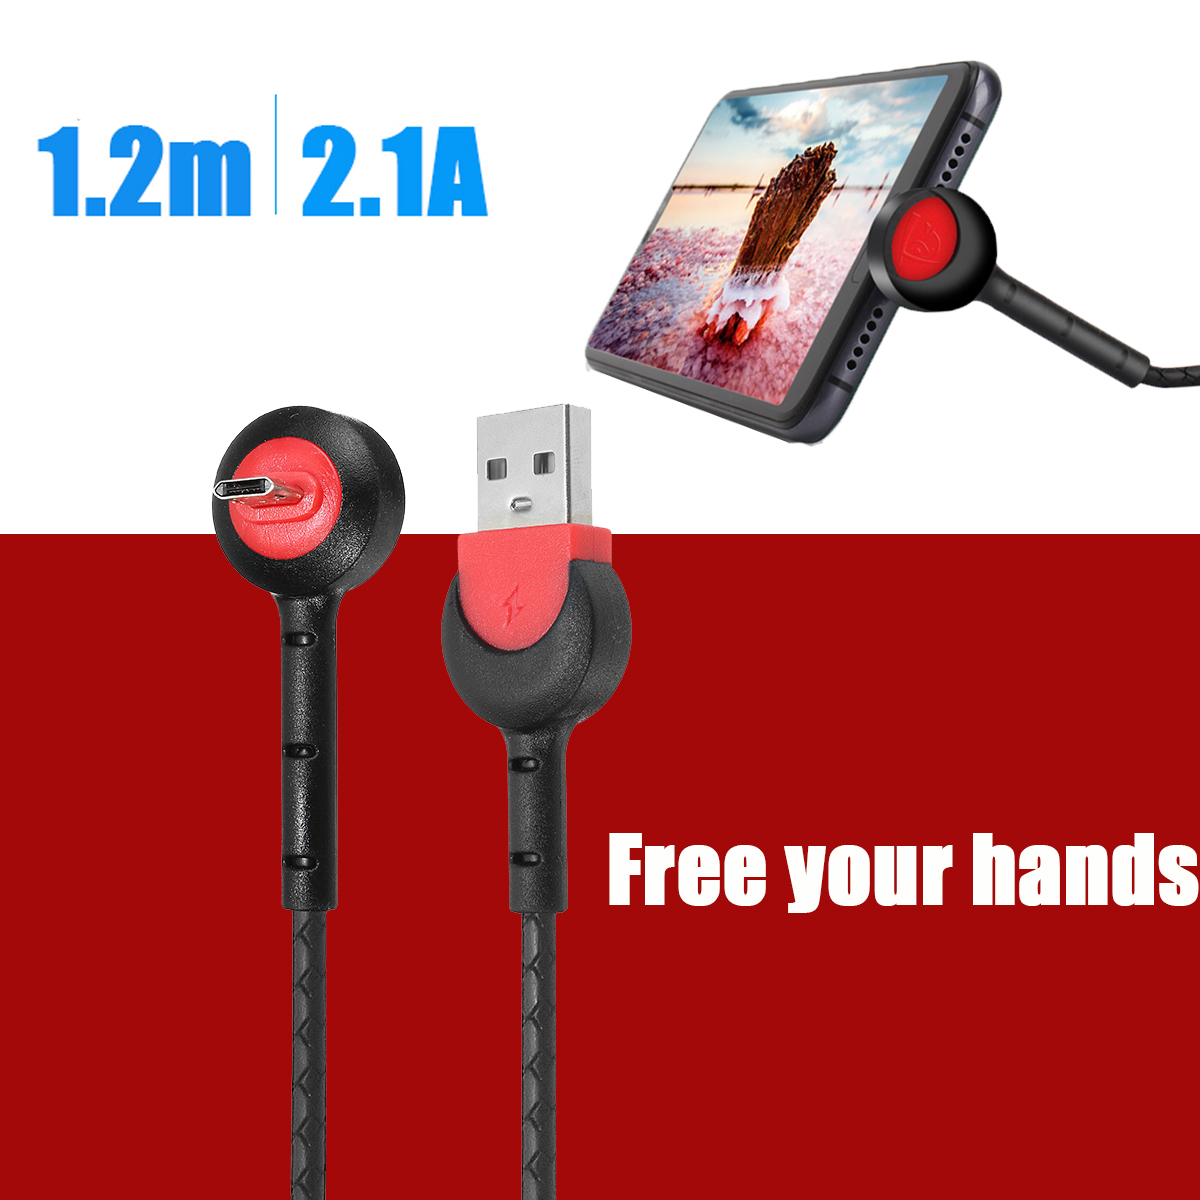 Bakeey 2.1A Desktop Phone Holder Type C Fast Charging Data Cable 1.2M For Oneplus 6 5t Xiaomi Mi8 S9